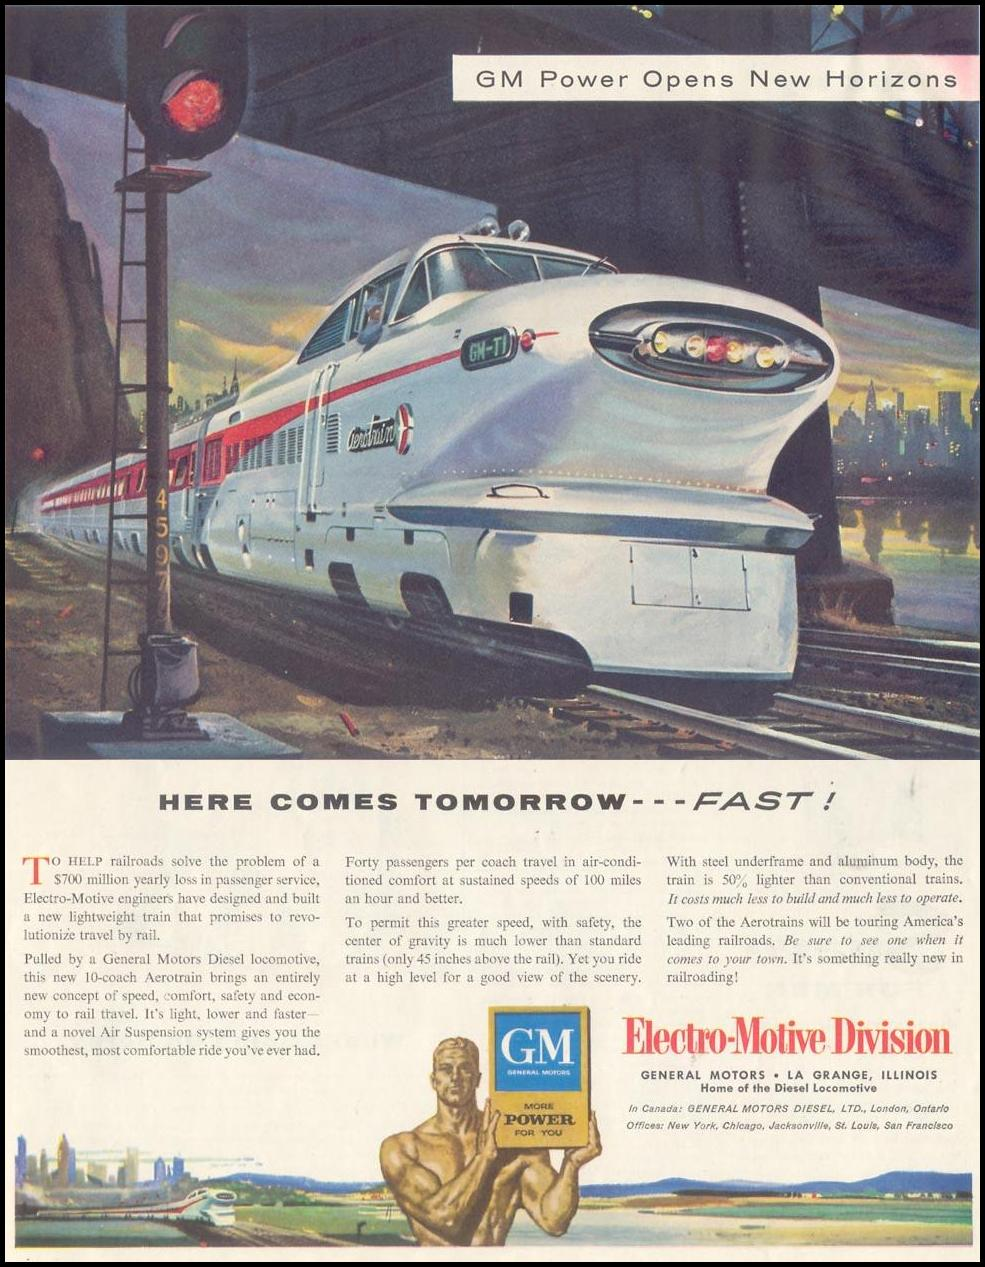 GENERAL MOTORS DIESEL LOCOMOTIVES